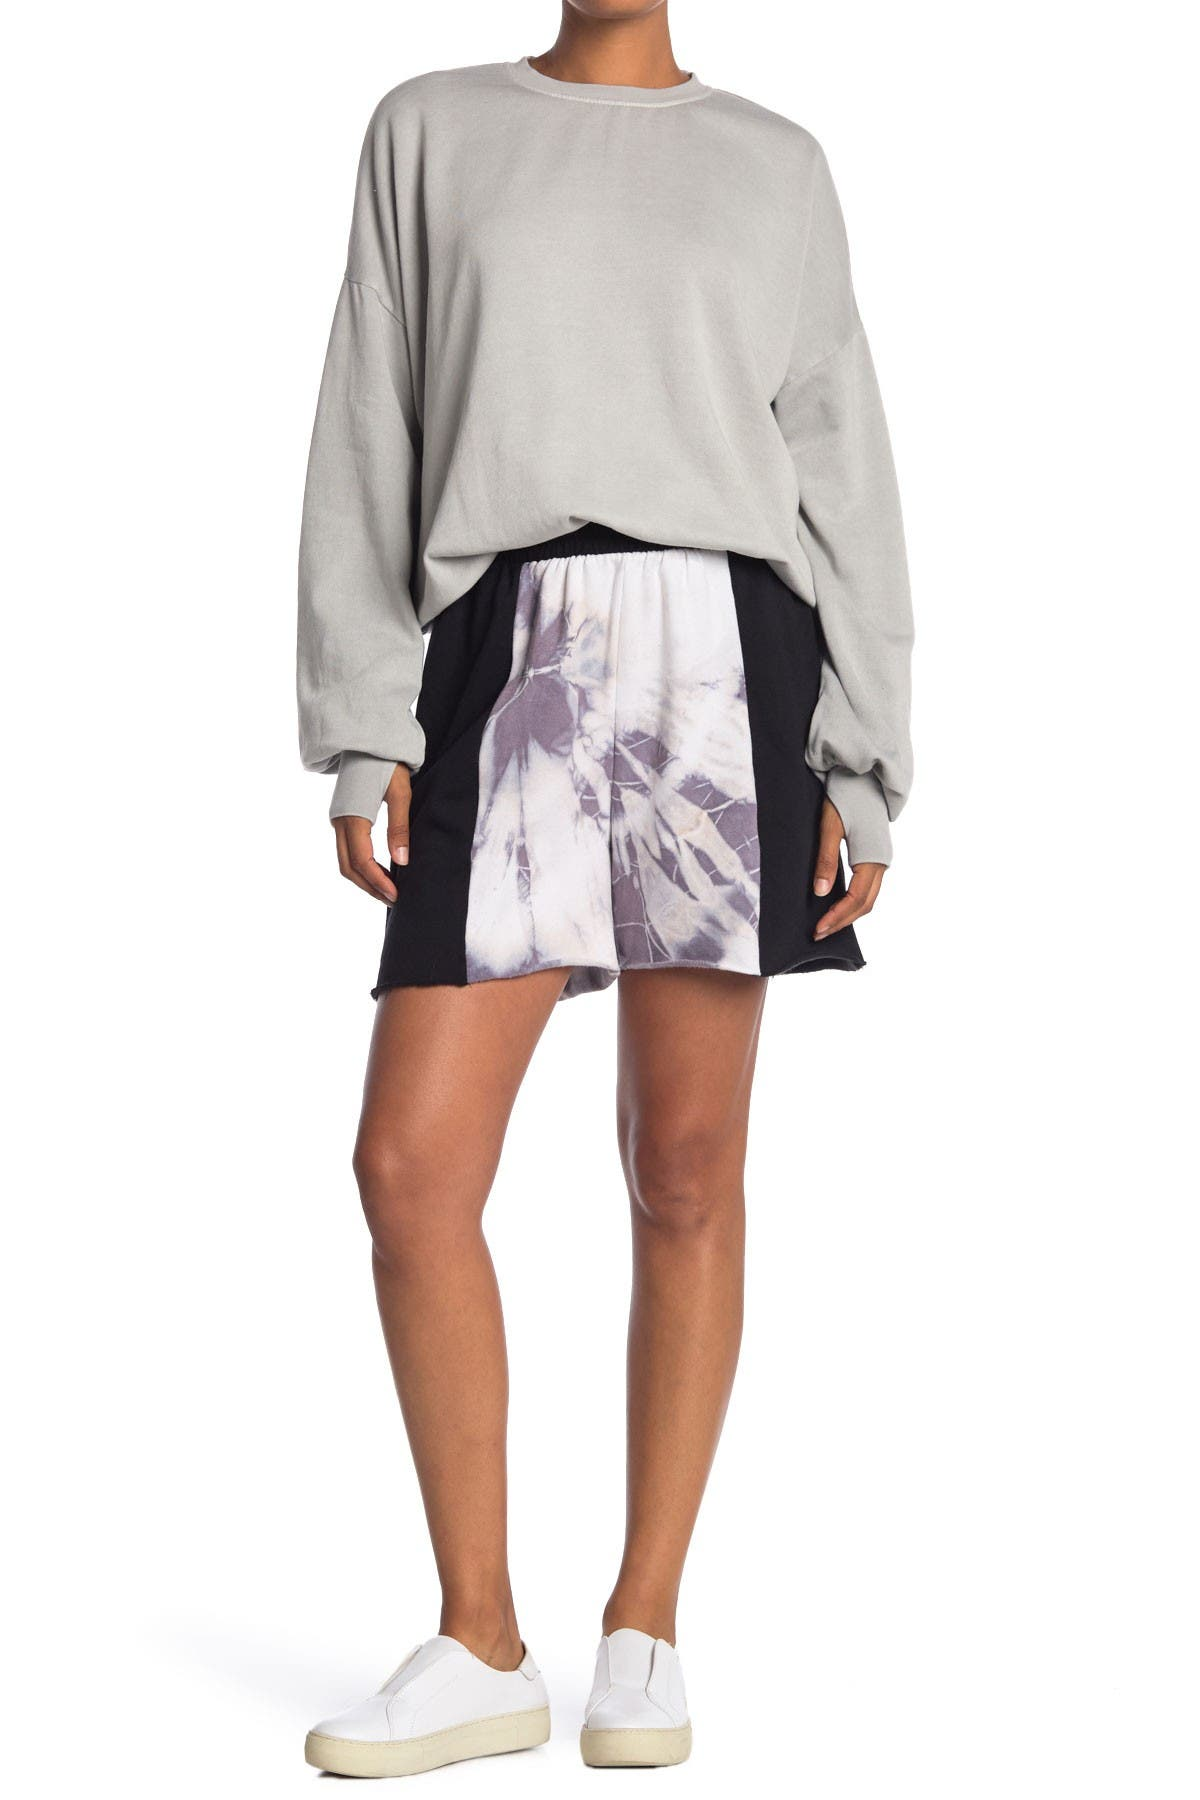 Image of The Laundry Room Tie Dye Bermuda Shorts